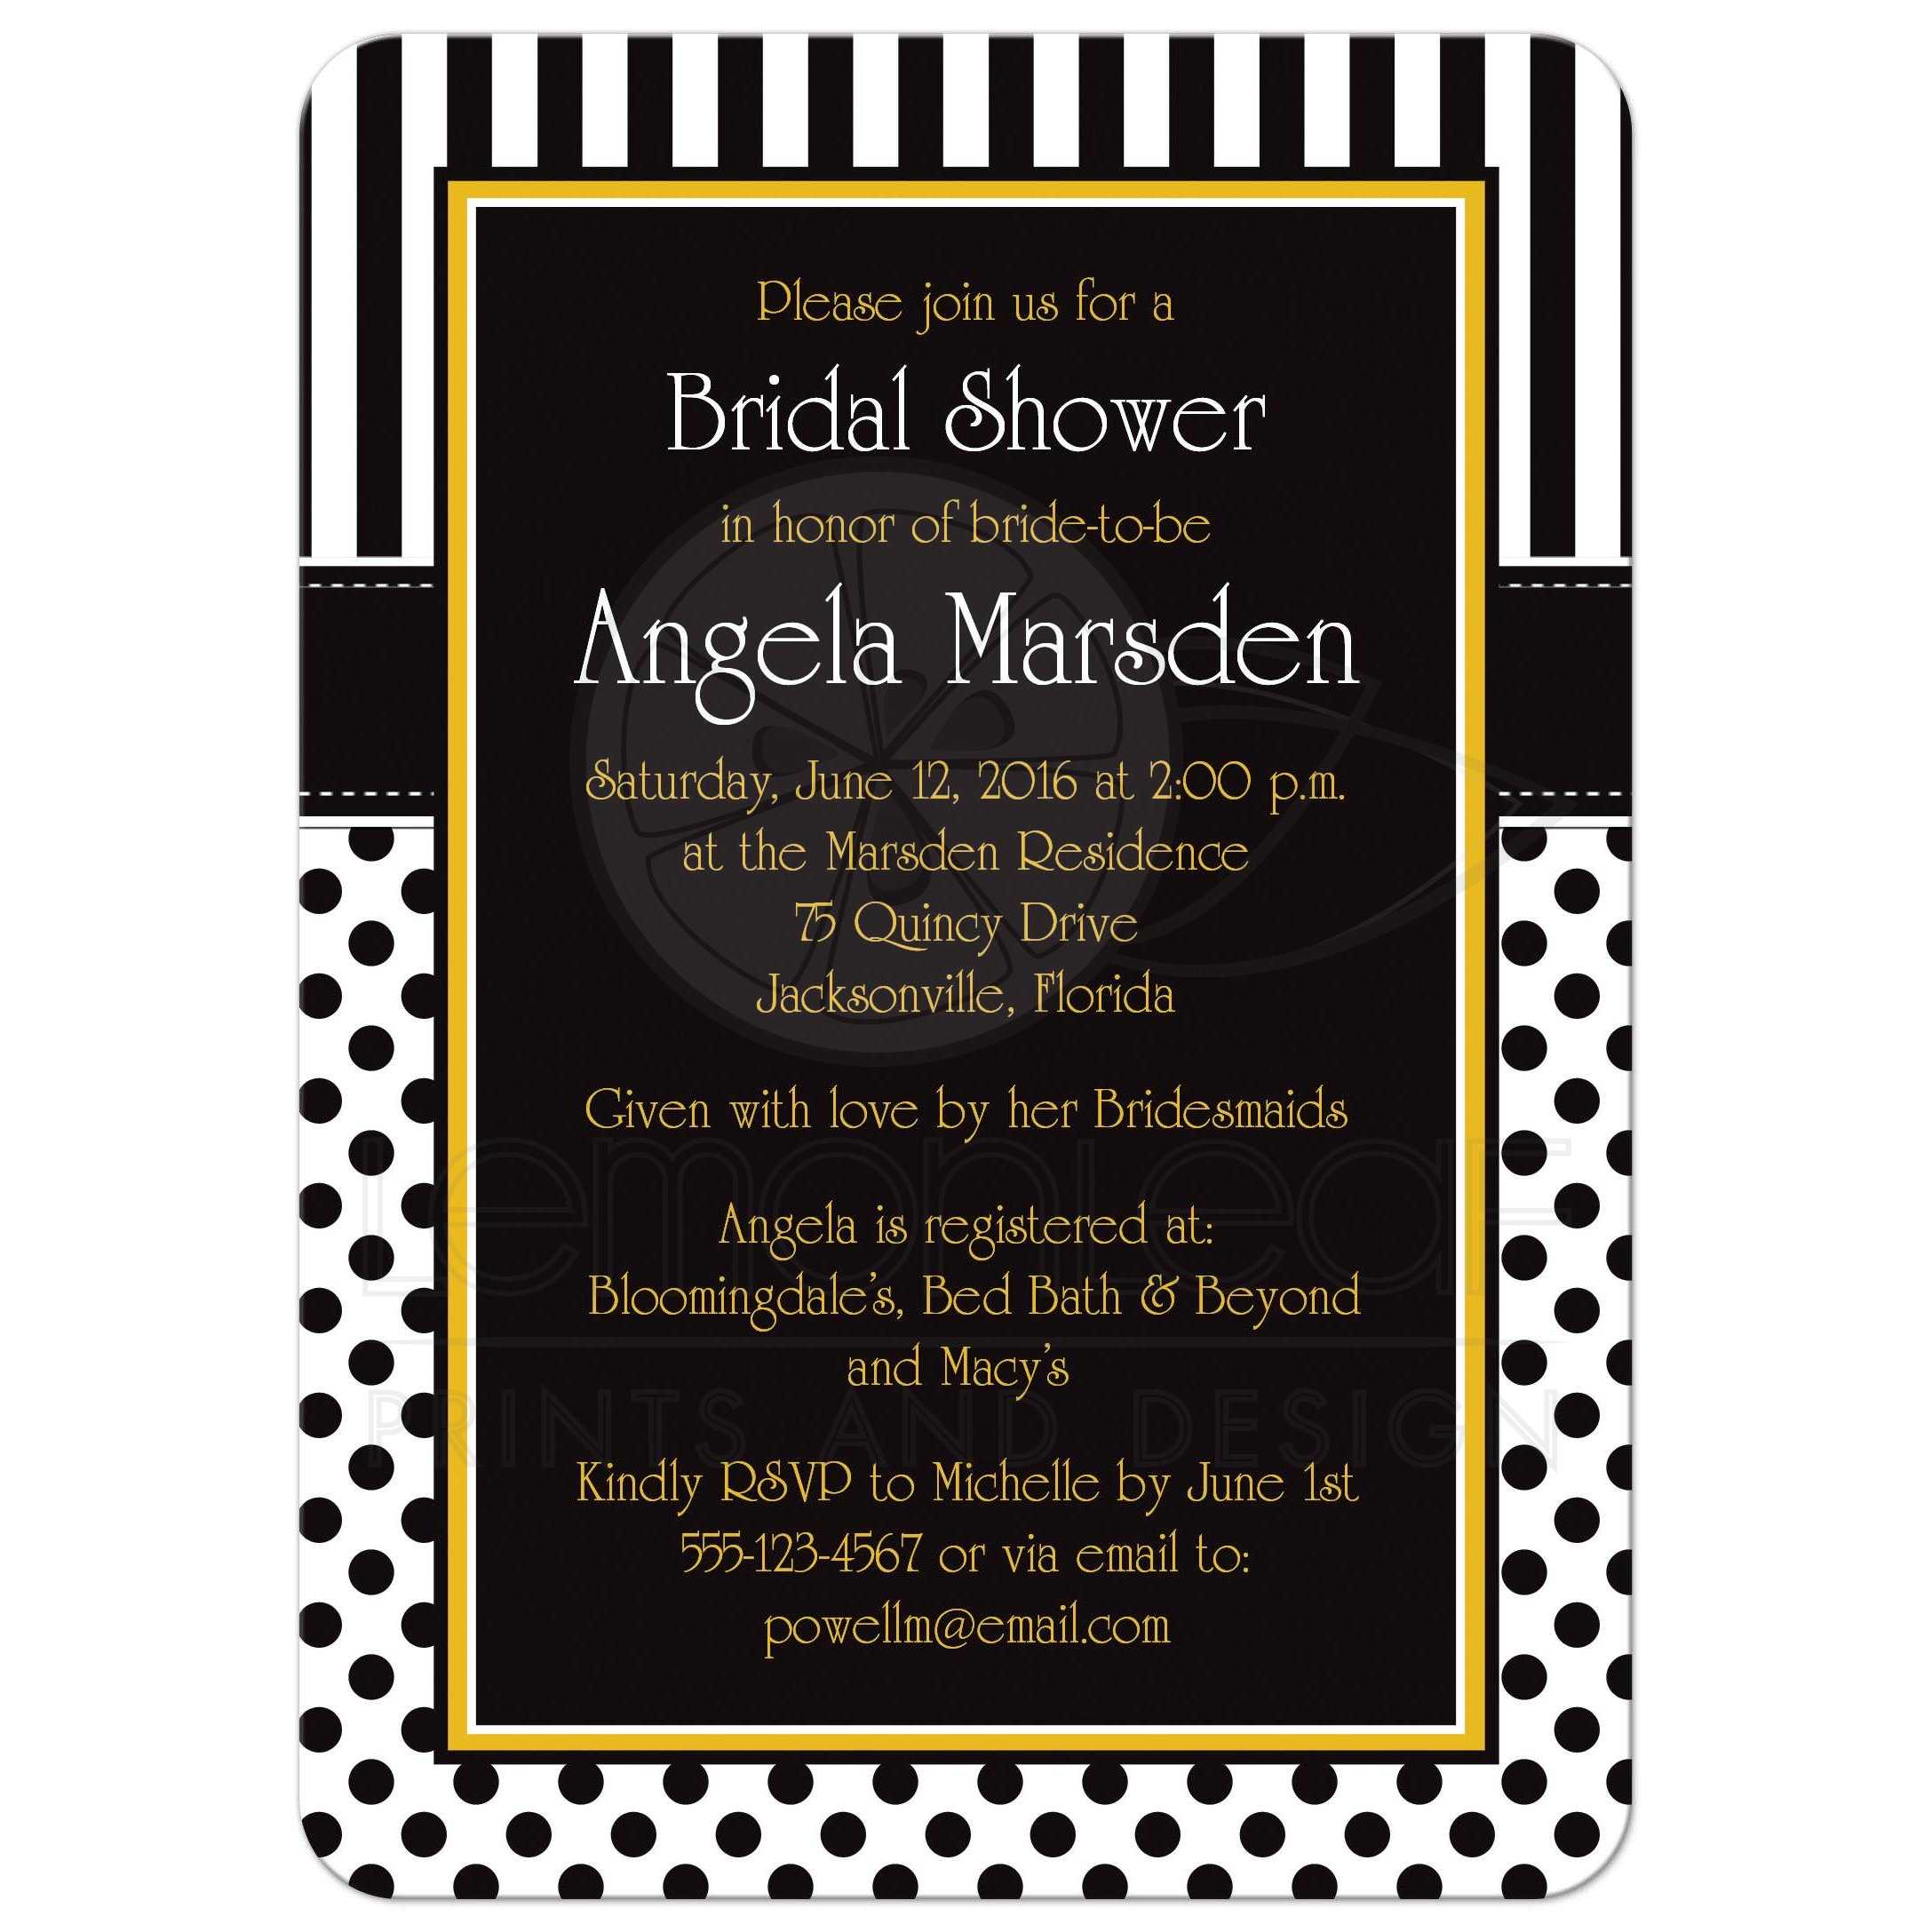 Bridal Shower Invitation | Black, White, Yellow | Polka Dots & Stripes